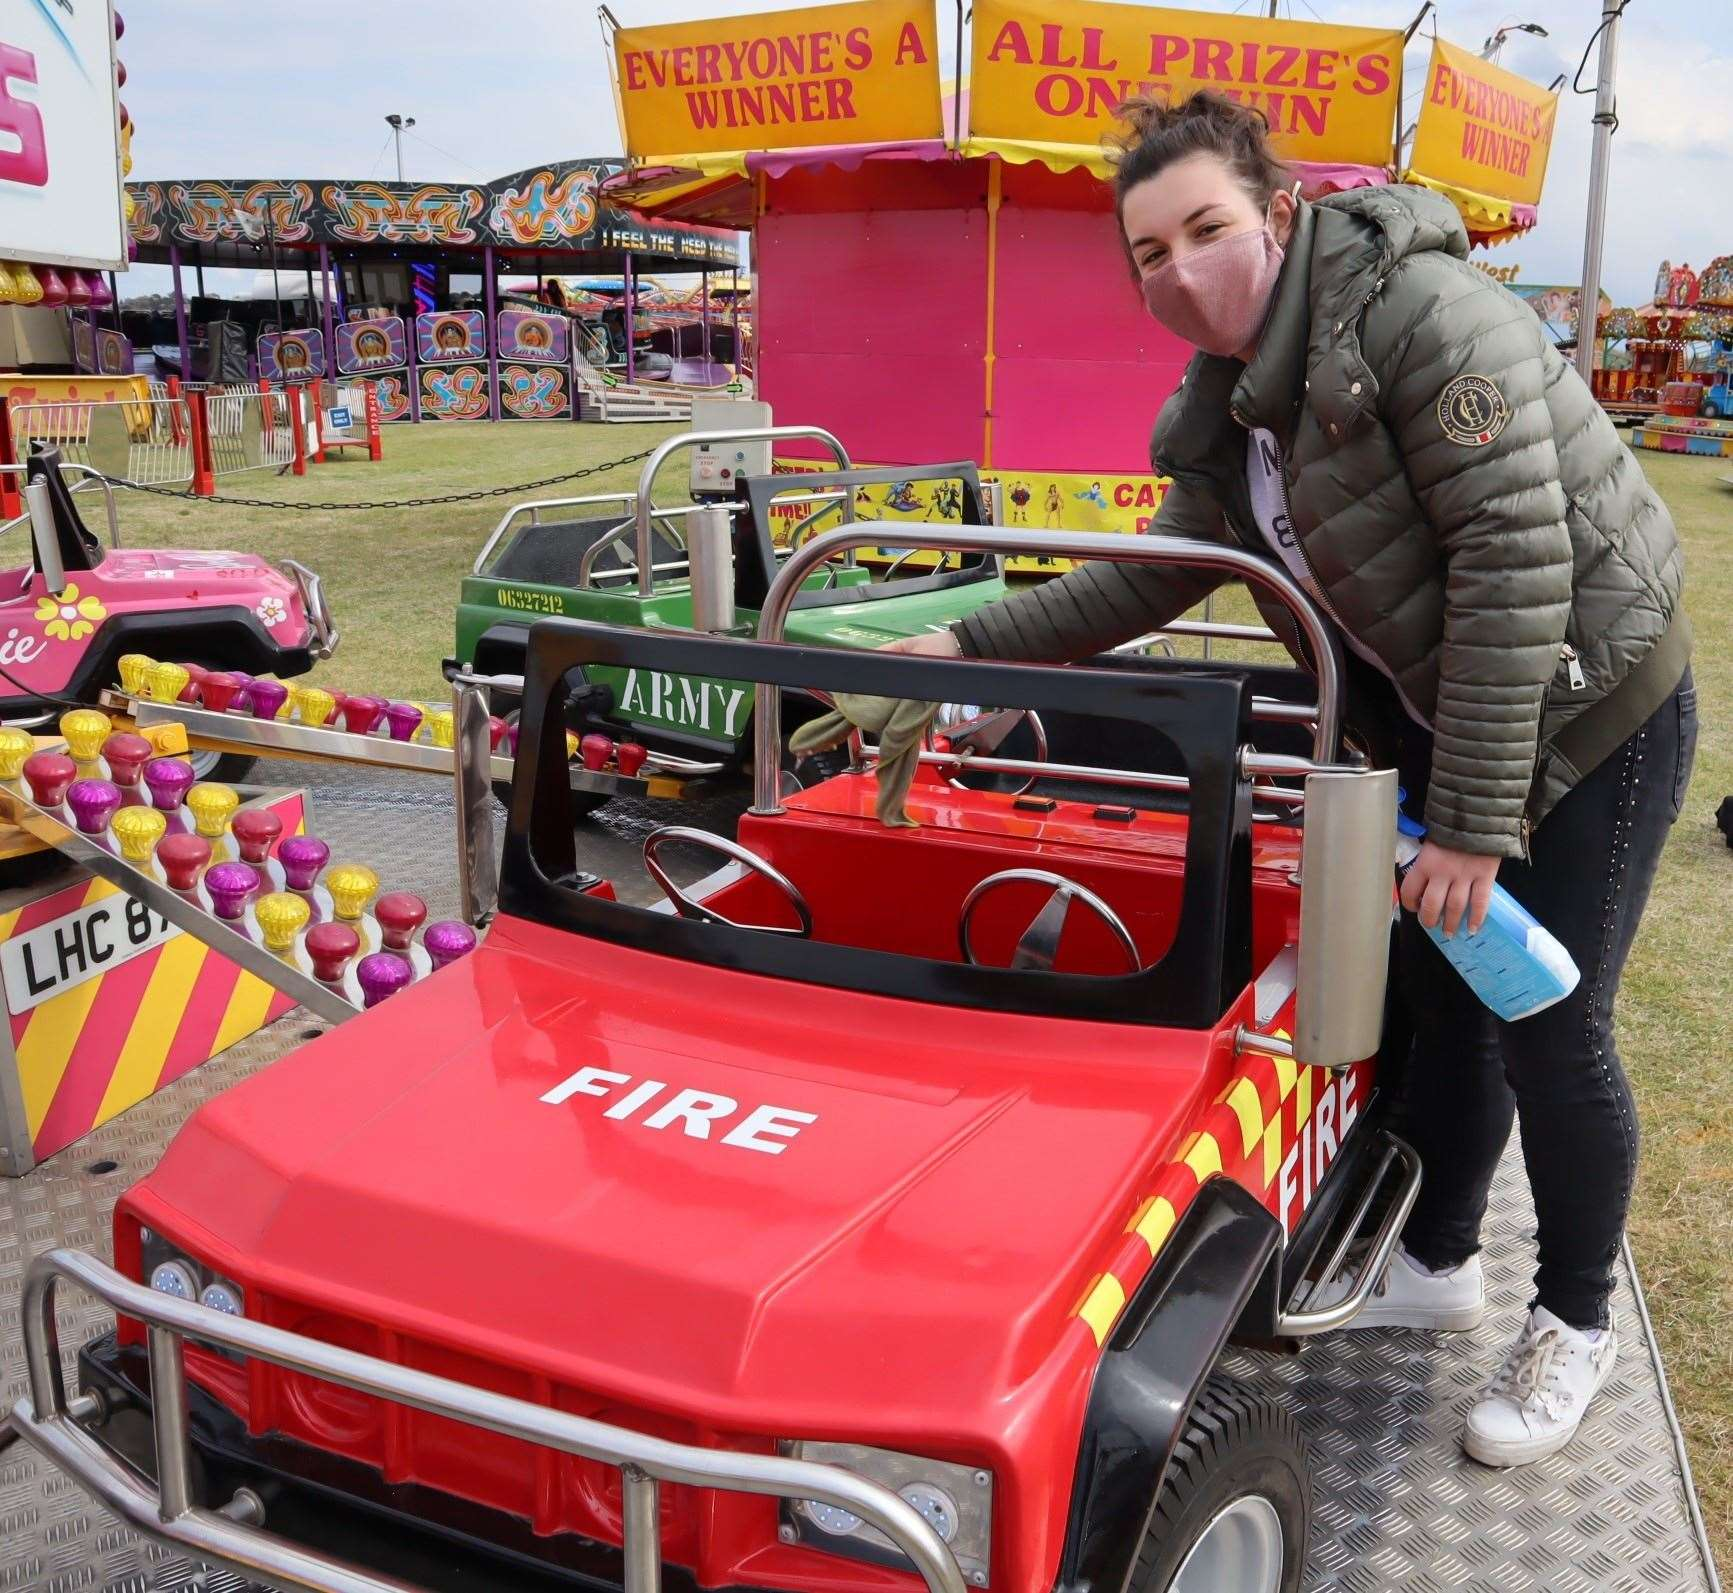 Danielle Smith cleaned down the fire truck at Smith's funfair at Barton's Point, Sheerness